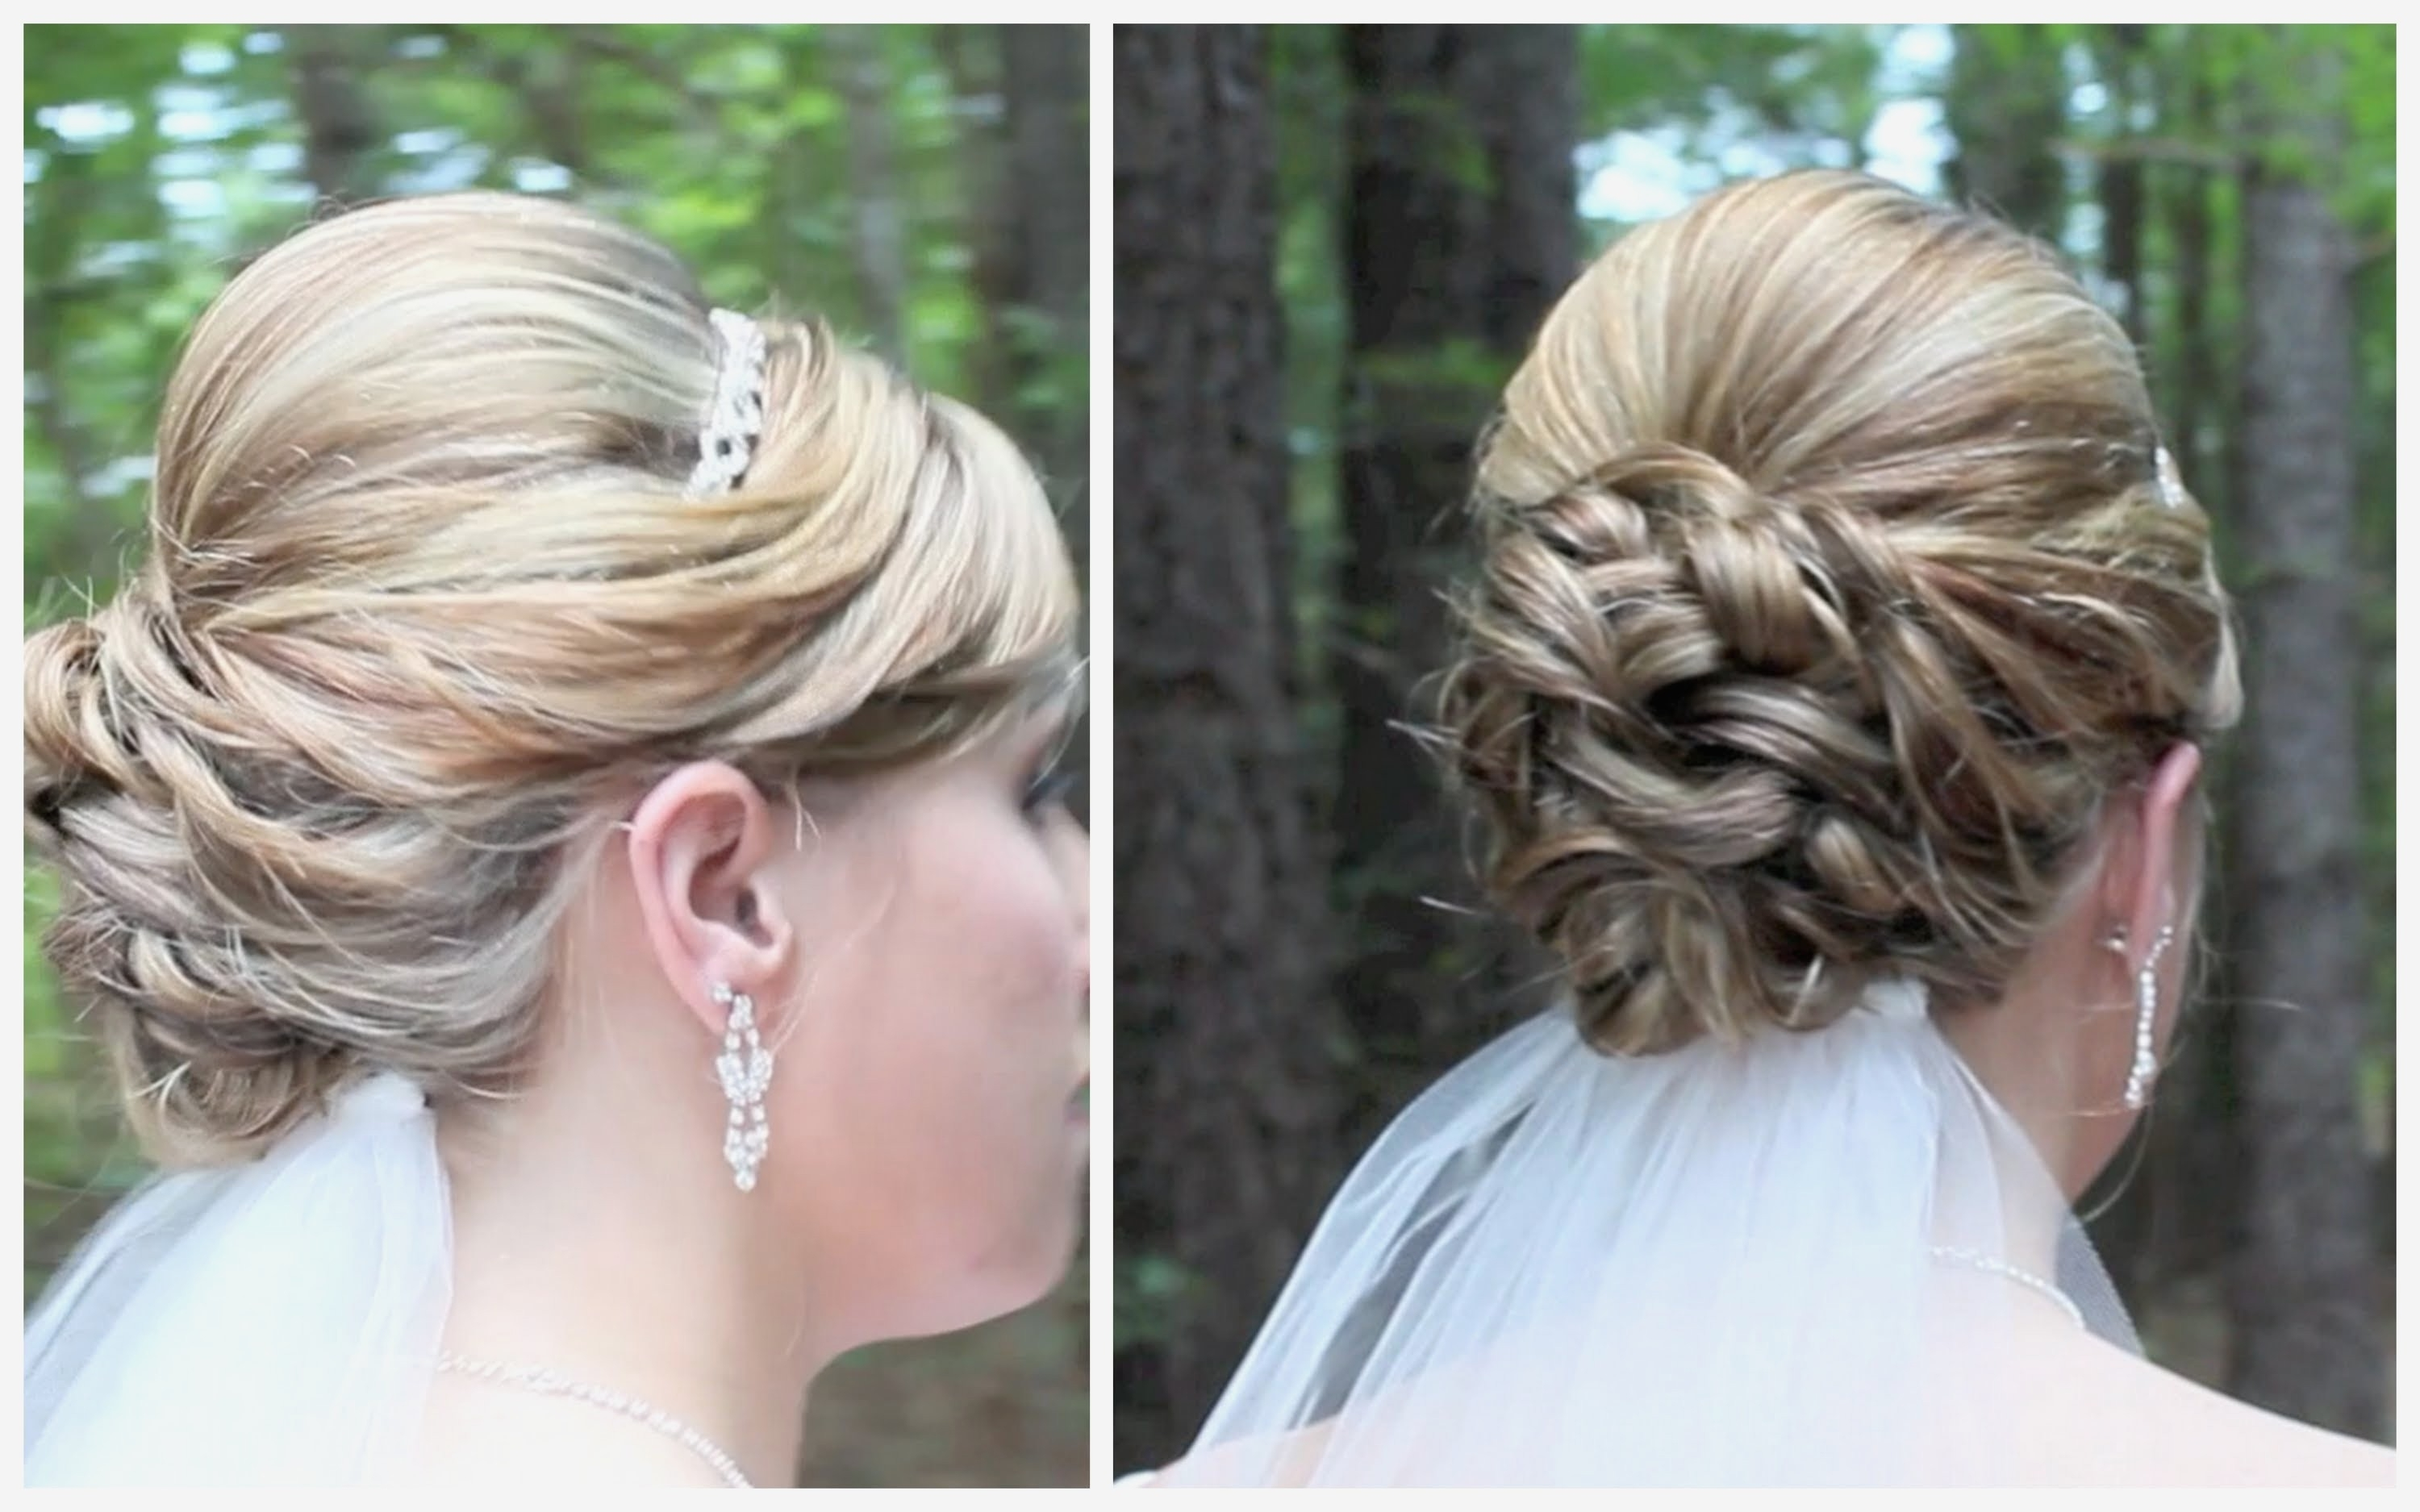 Fashionable Tied Up Wedding Hairstyles Throughout Wedding Hairstyles : Awesome Up Wedding Hairstyles Image Under Hair (View 3 of 15)